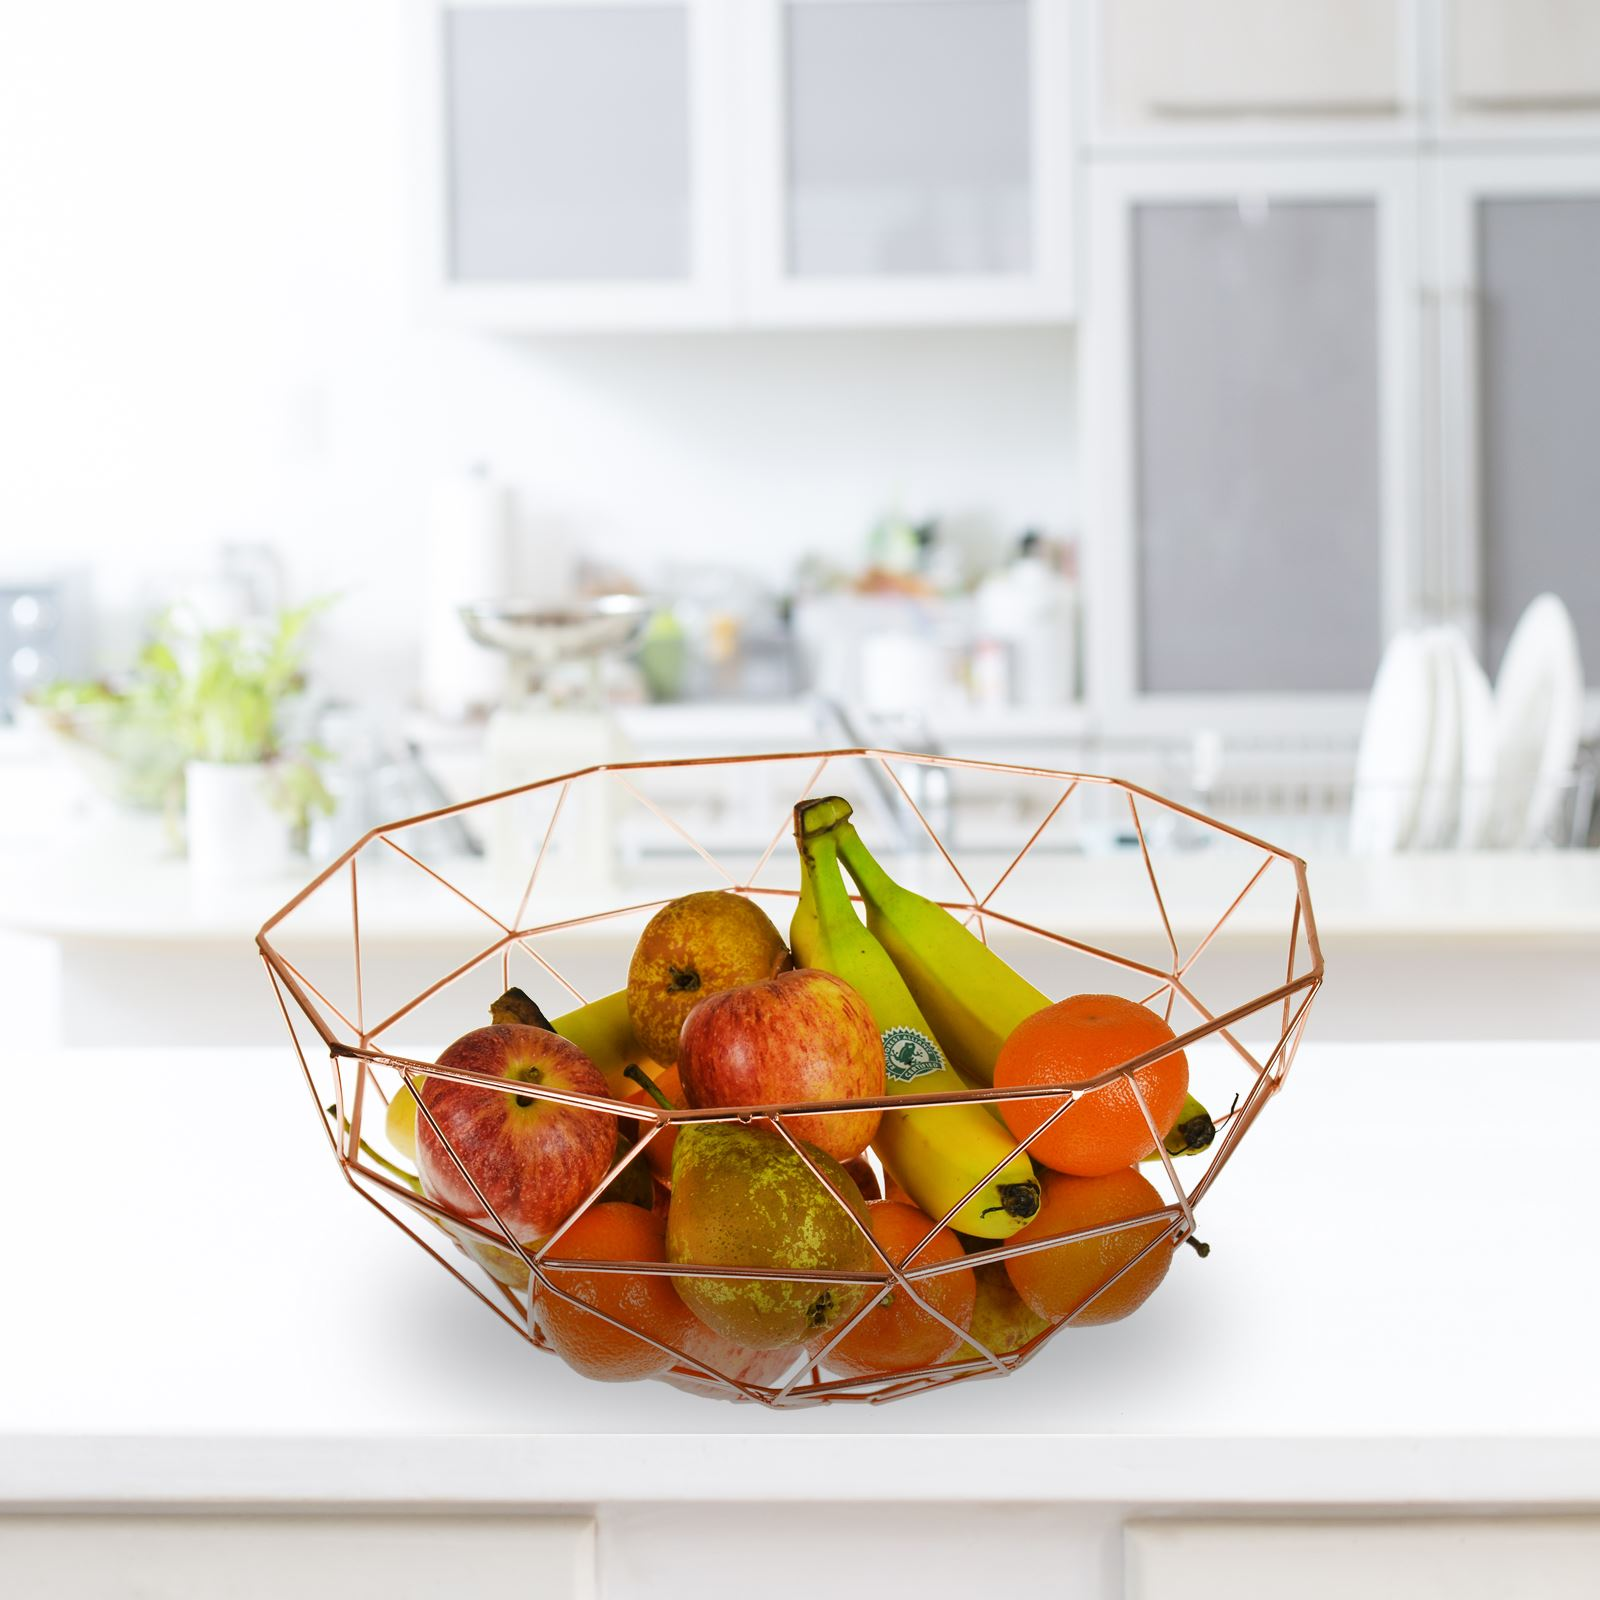 Details about Copper Kitchen Accessory Set Fruit Basket Utensil Roll Holder  Iron Wire Stand